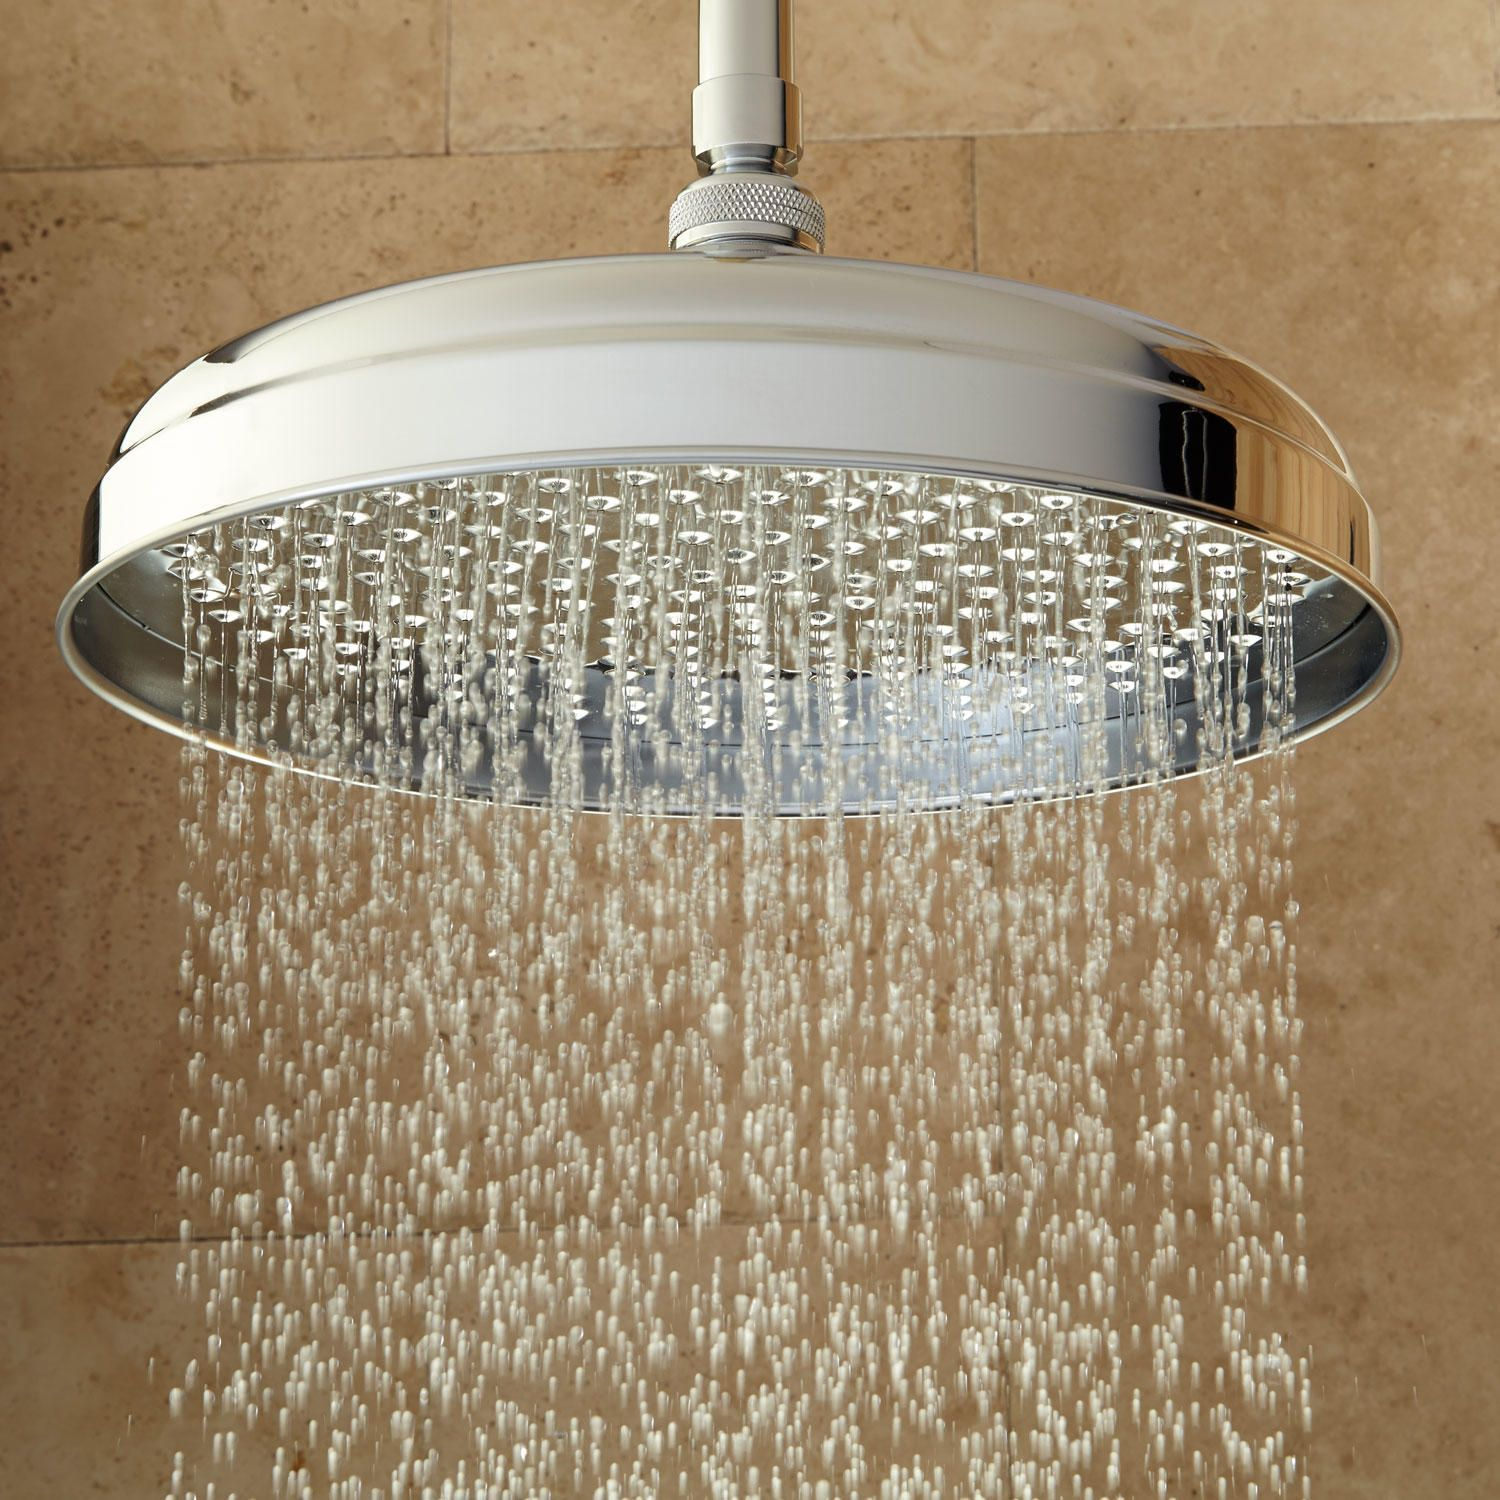 Devereaux Ceiling Mount Shower Head With Square Arm Bathroom